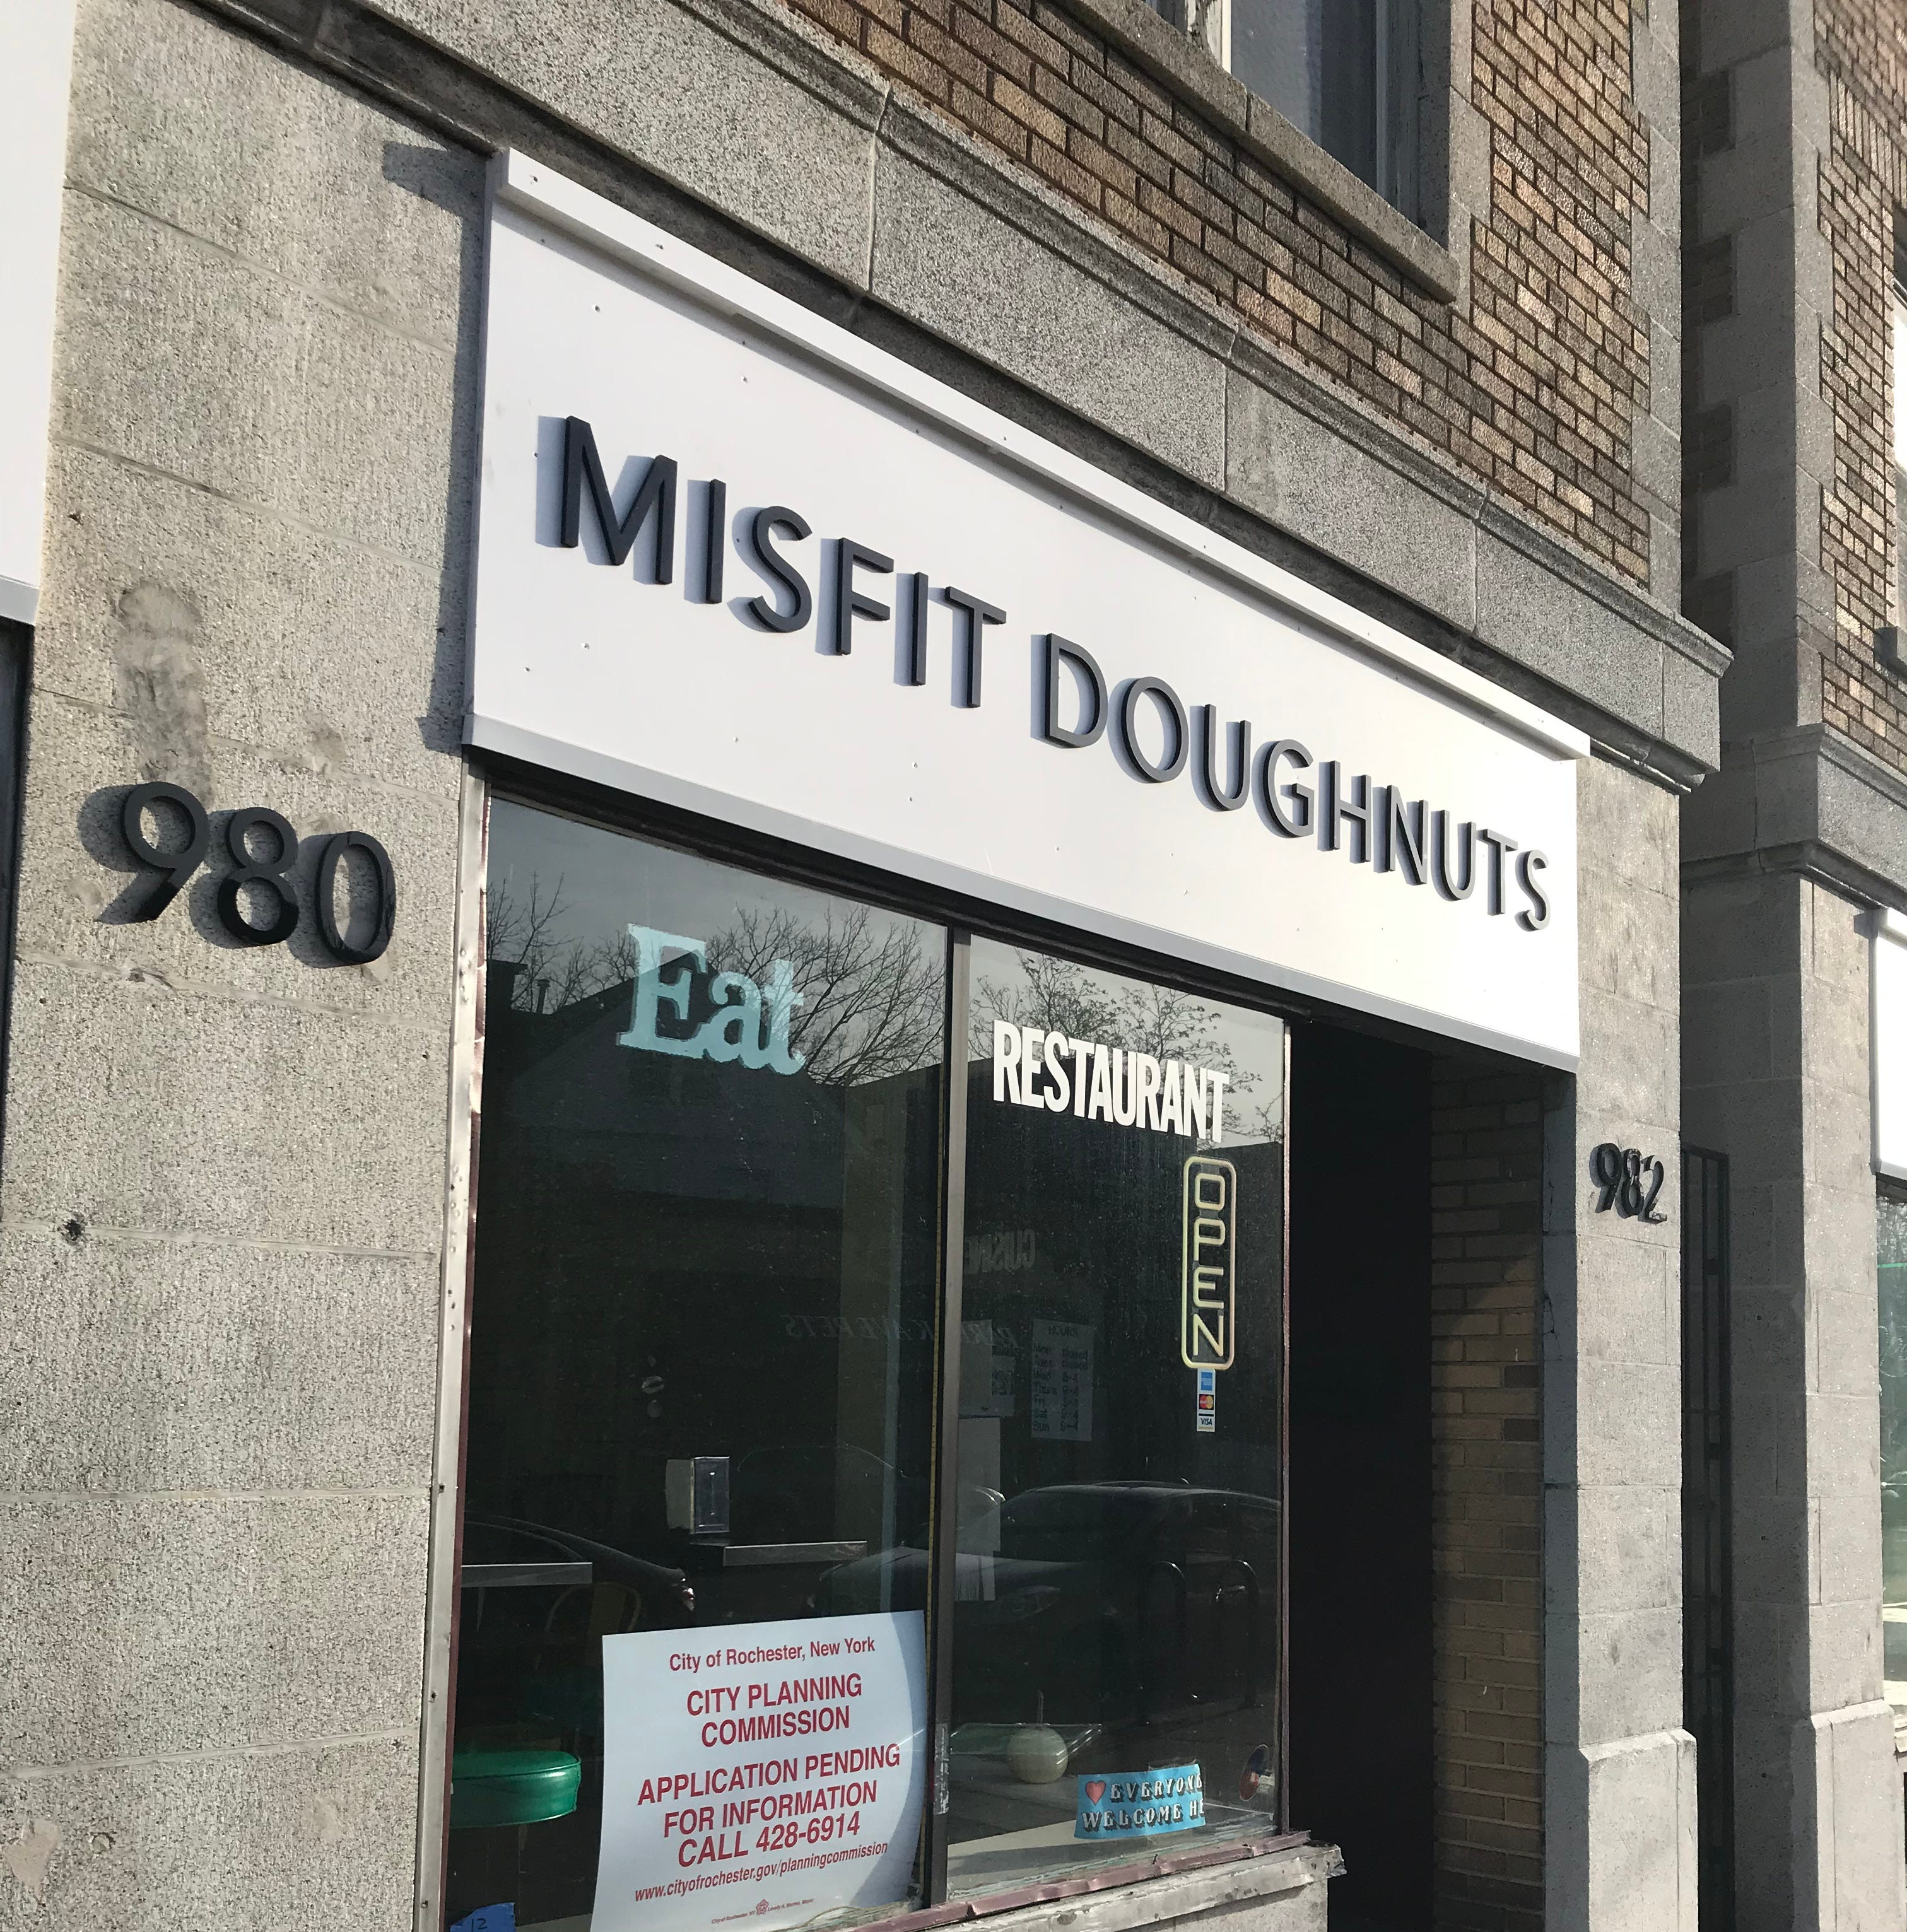 Misfit Doughnuts owner in 'shock and disbelief' after Monroe Ave. fire